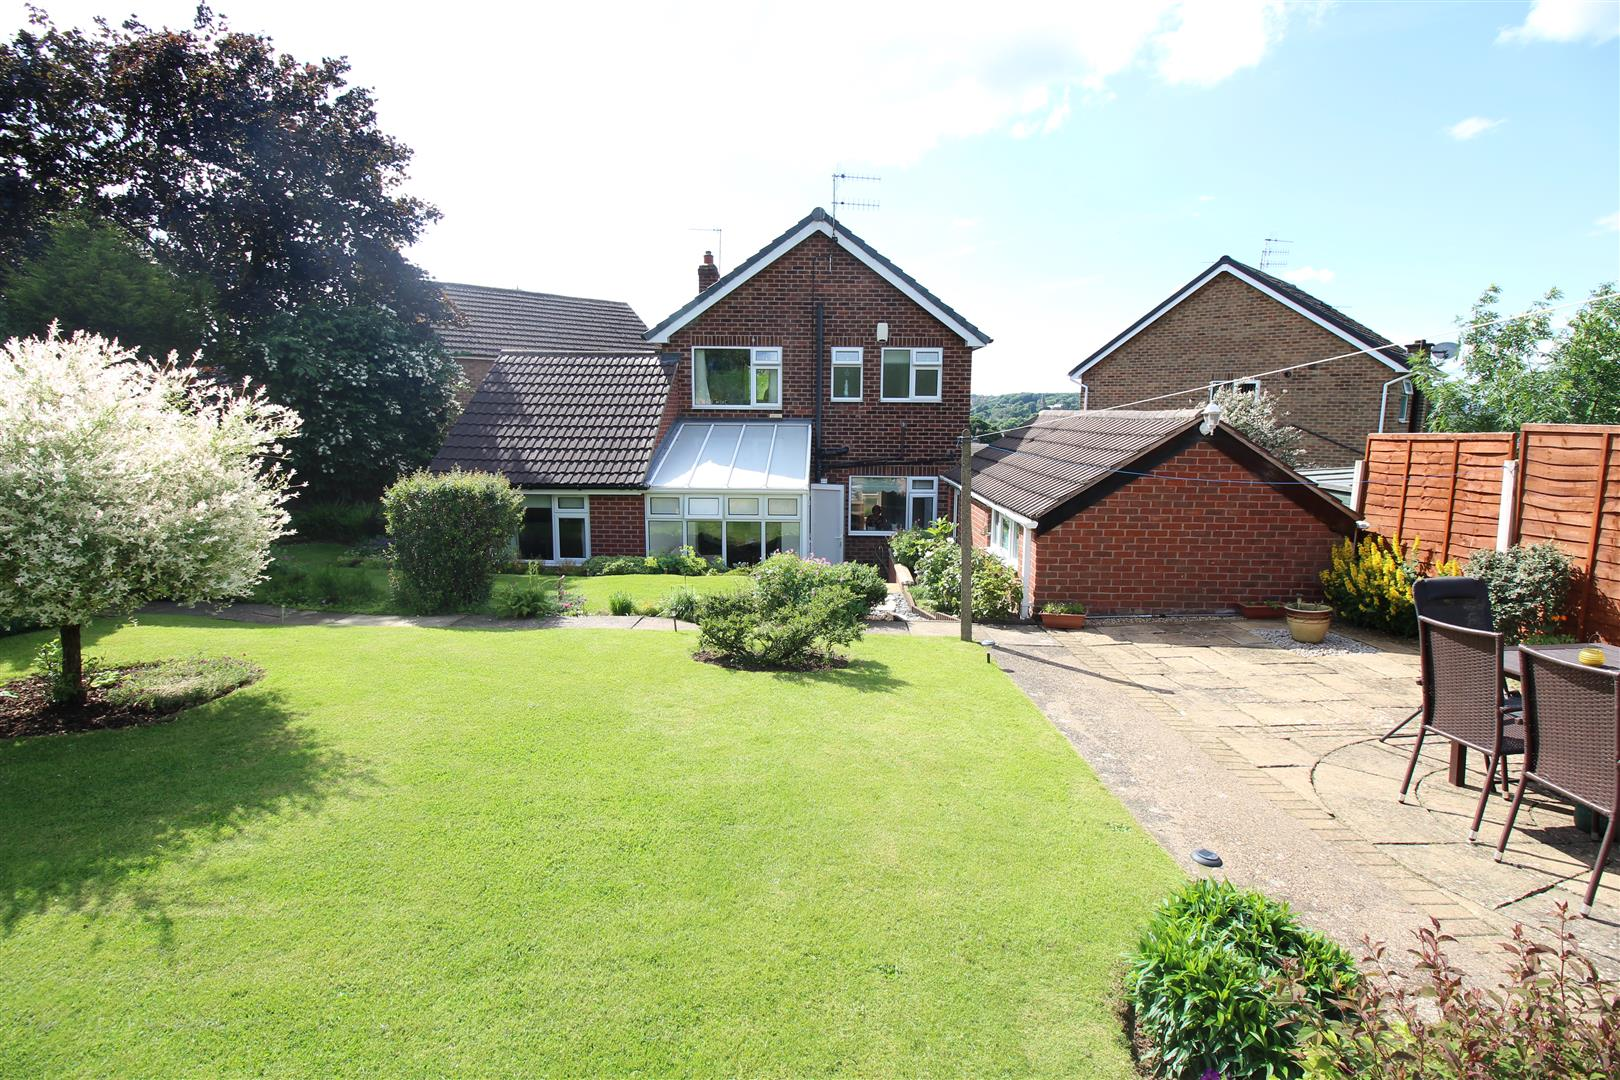 4 Bedrooms Detached House for sale in Moorland Avenue, Stapleford